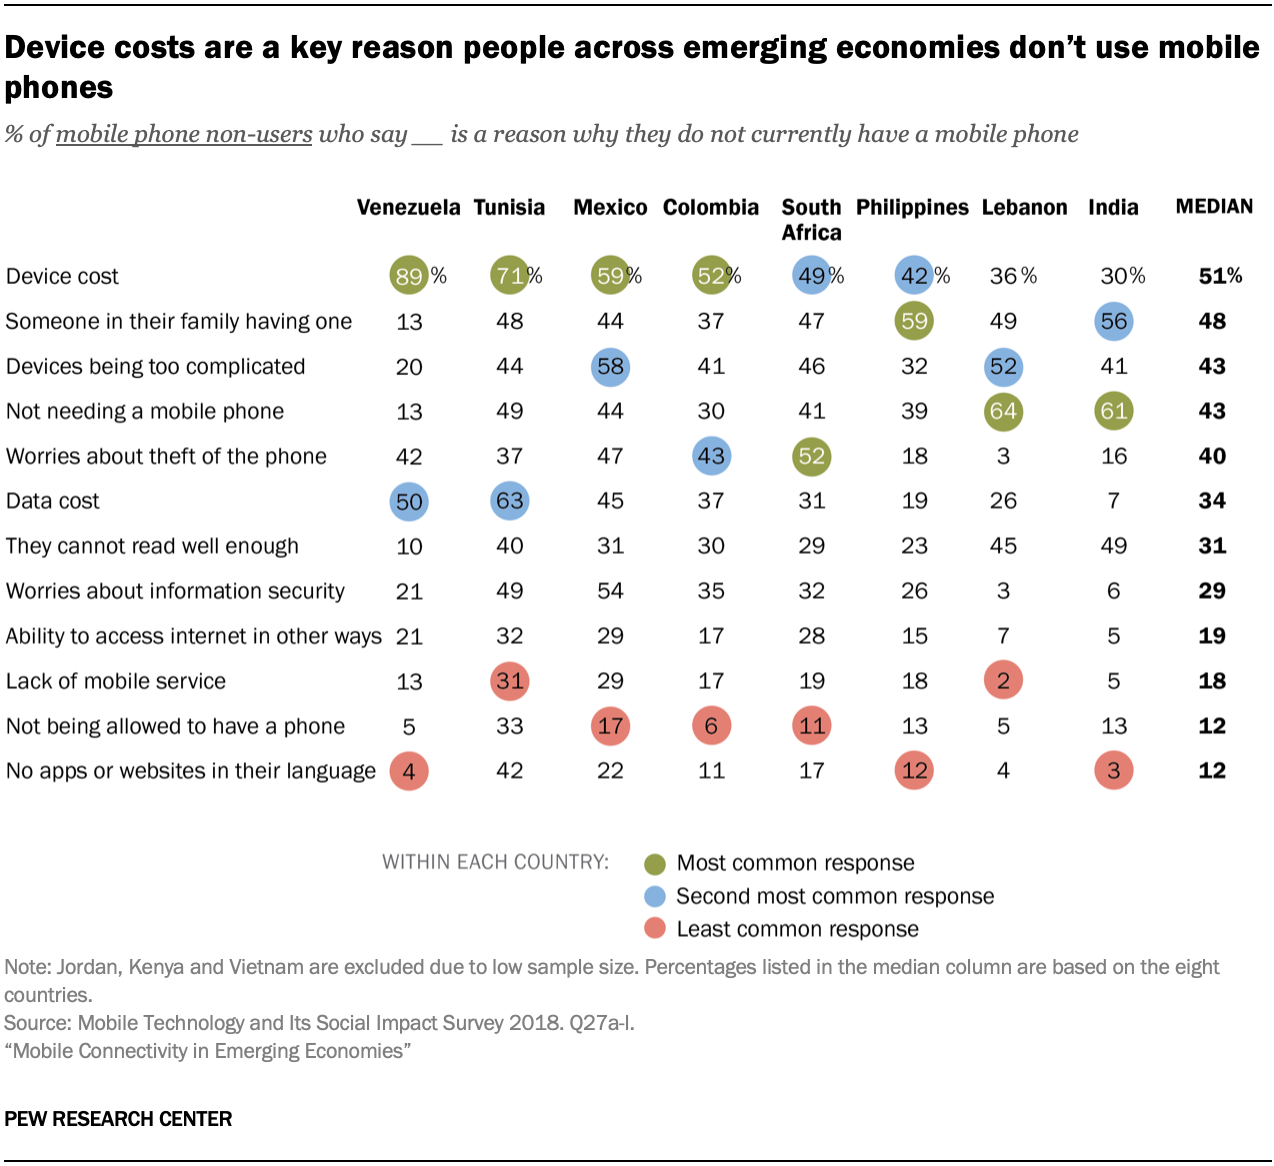 Device costs are a key reason people across emerging economies don't use mobile phones